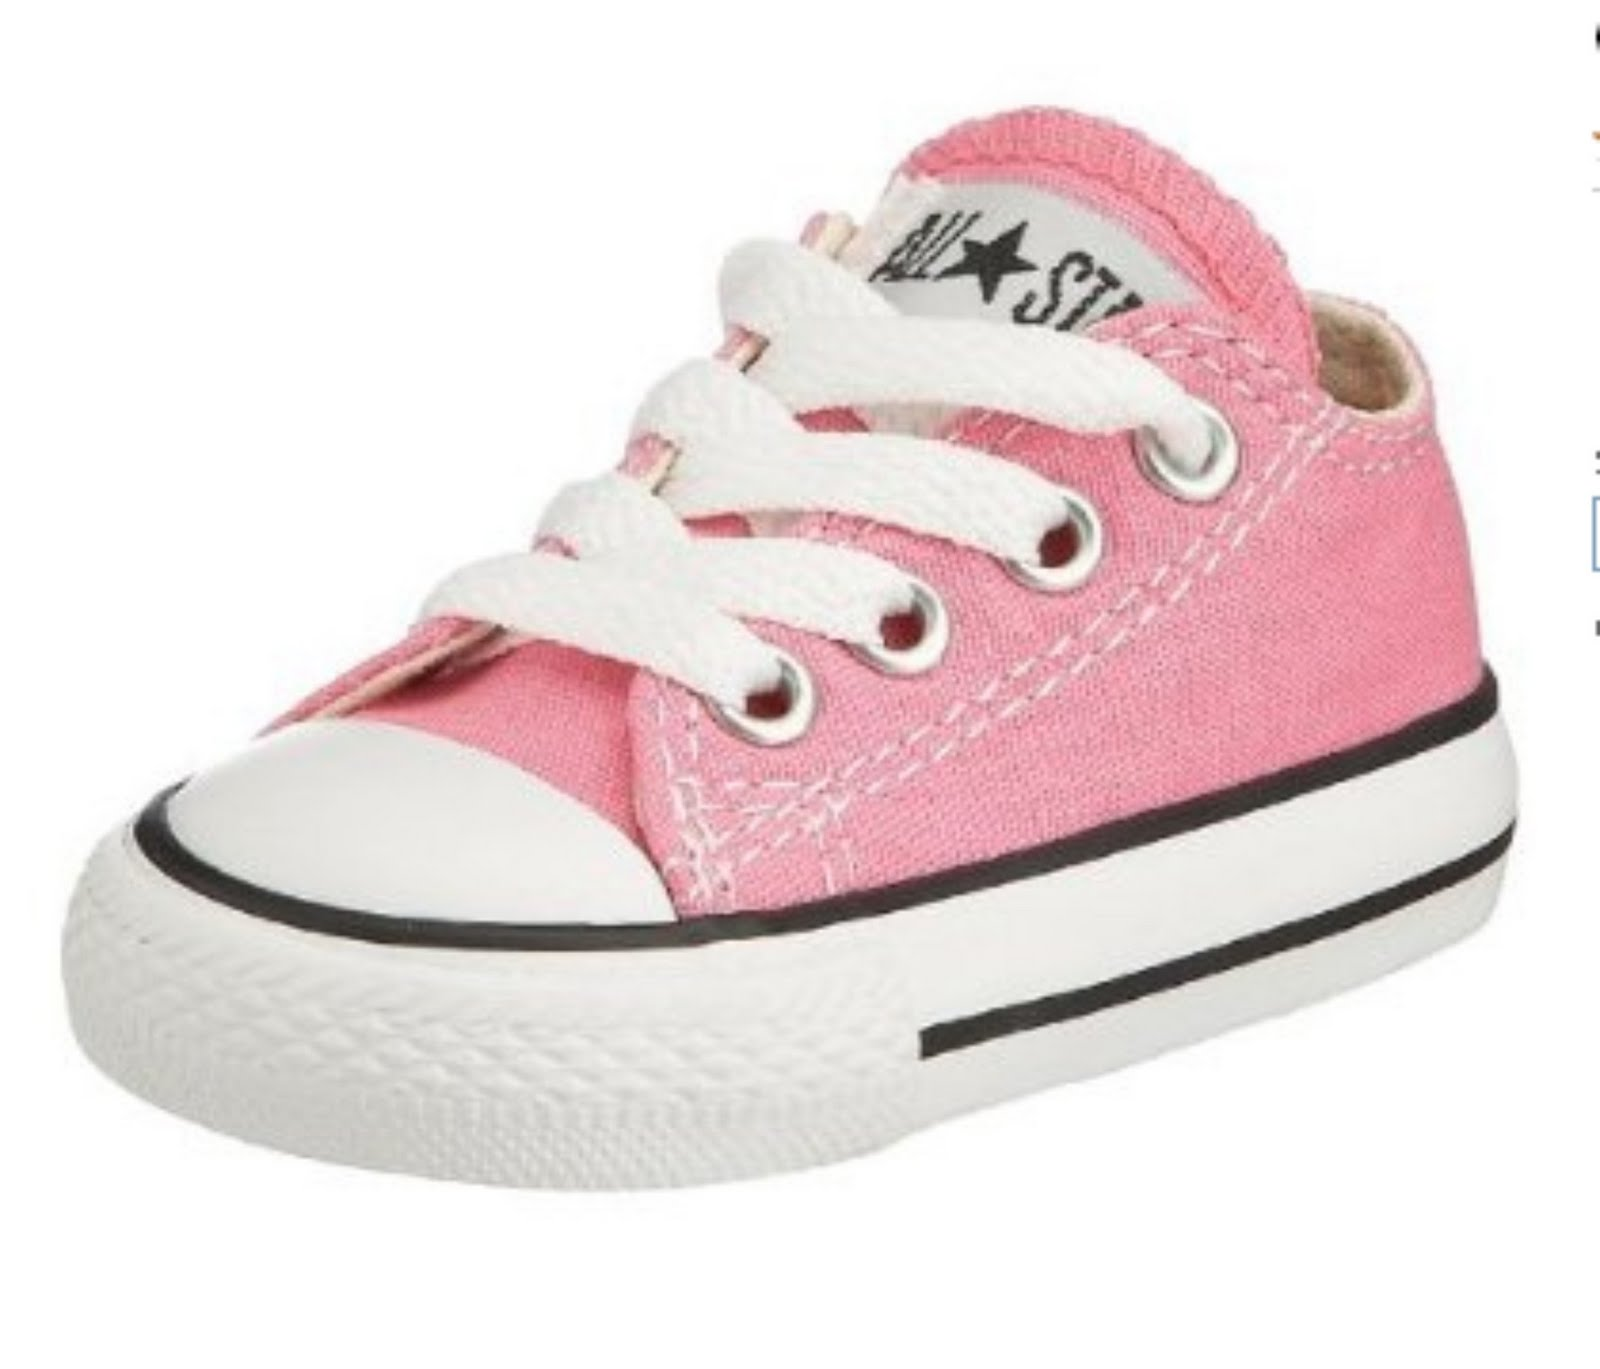 chic toddler sneakers